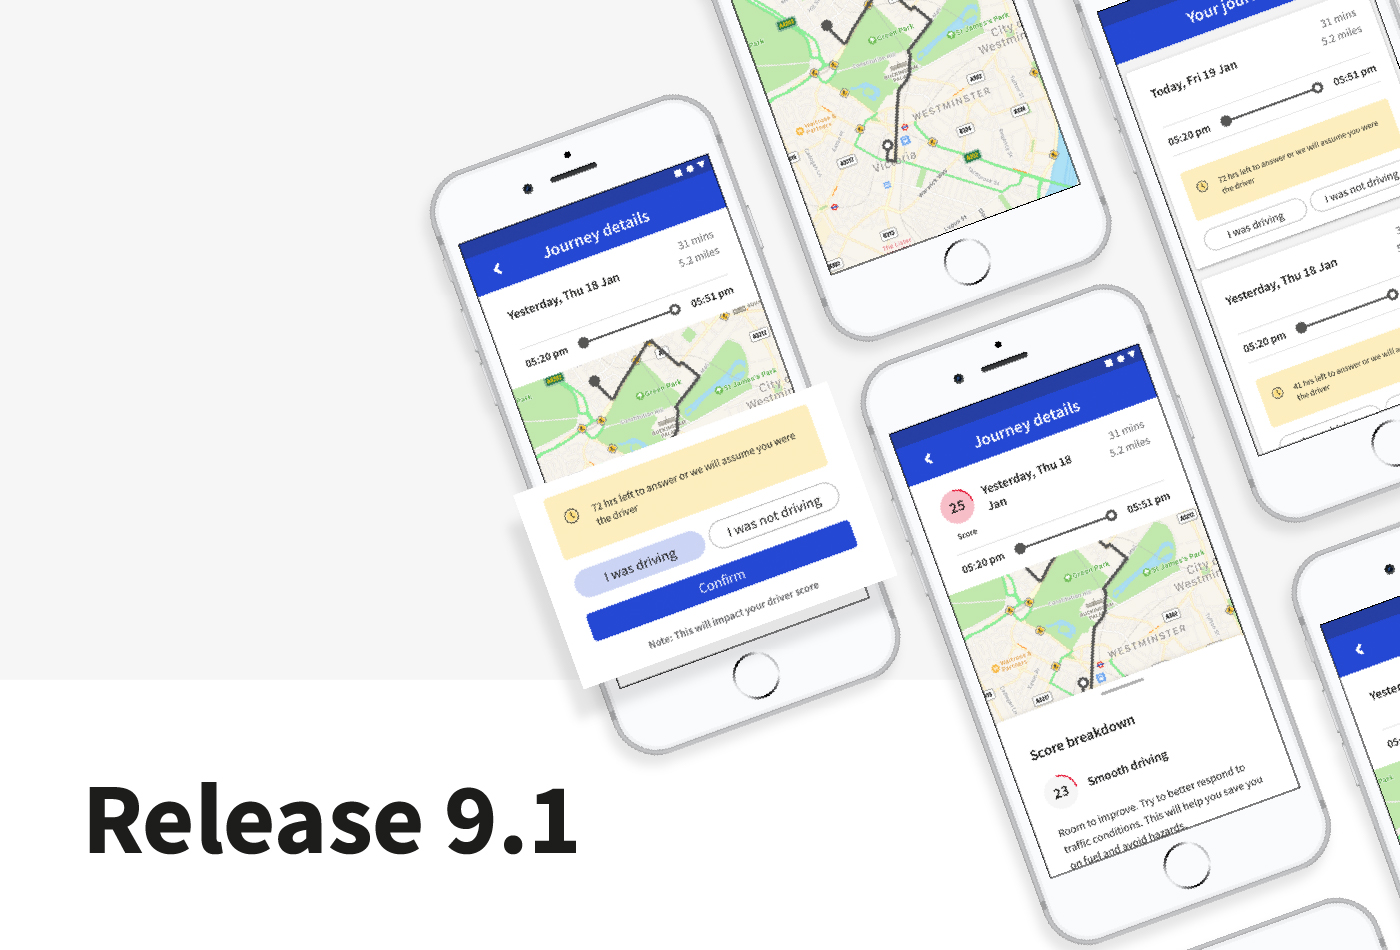 Product Release Notes: Release 9.1